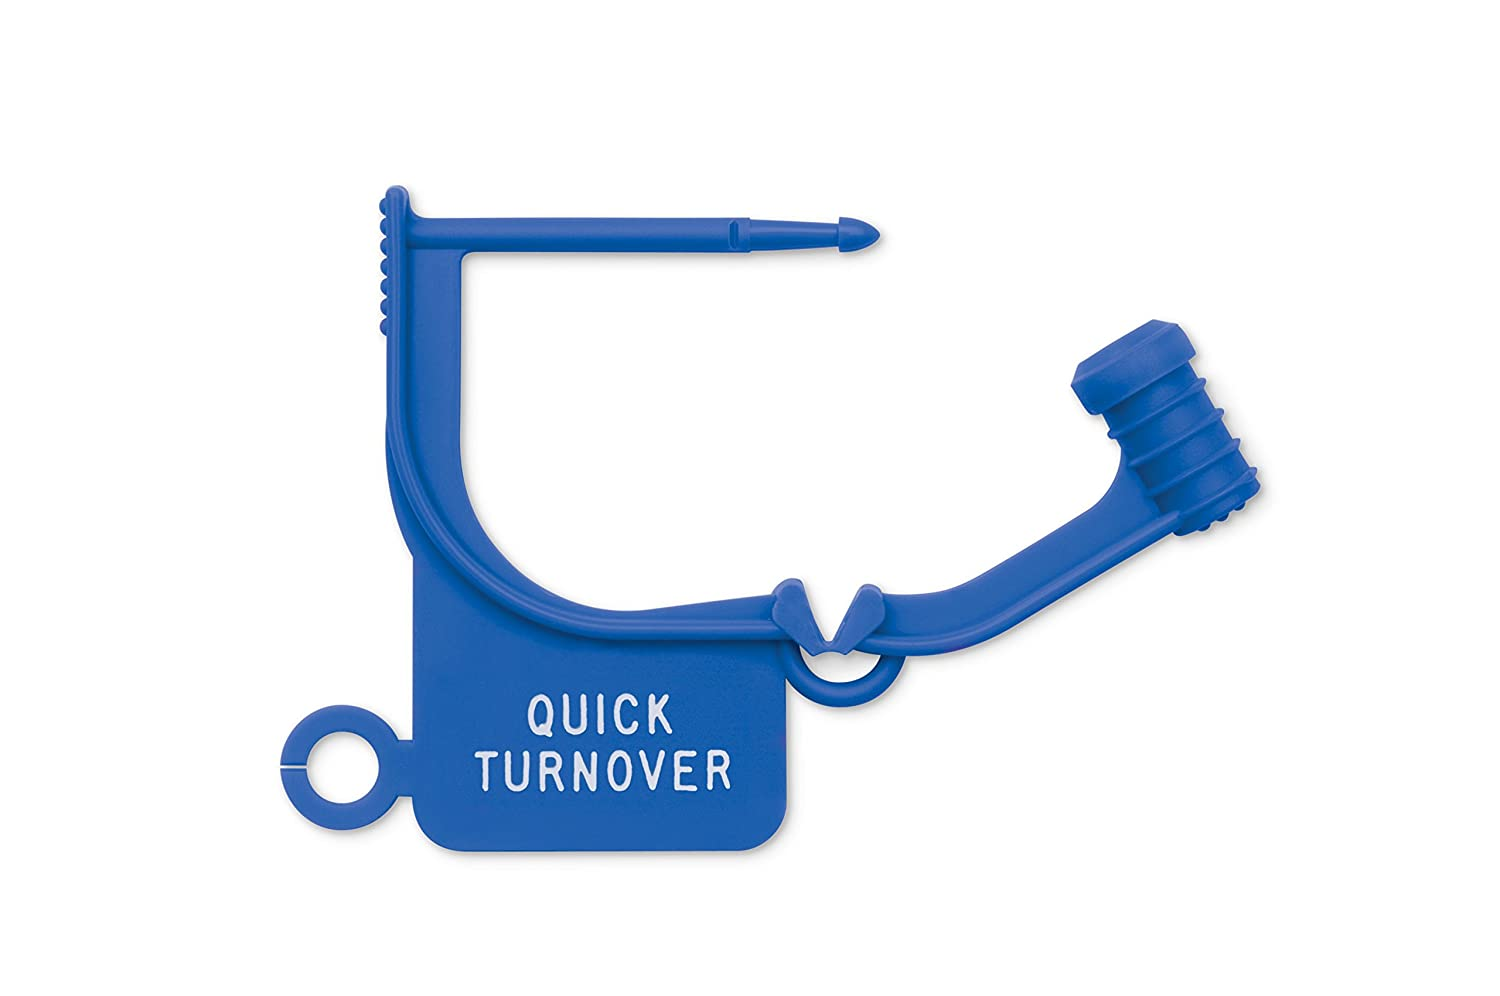 Key Surgical LT-210-1000 Locking Tag QUICK TURNOVER Pack of 1000 Blue